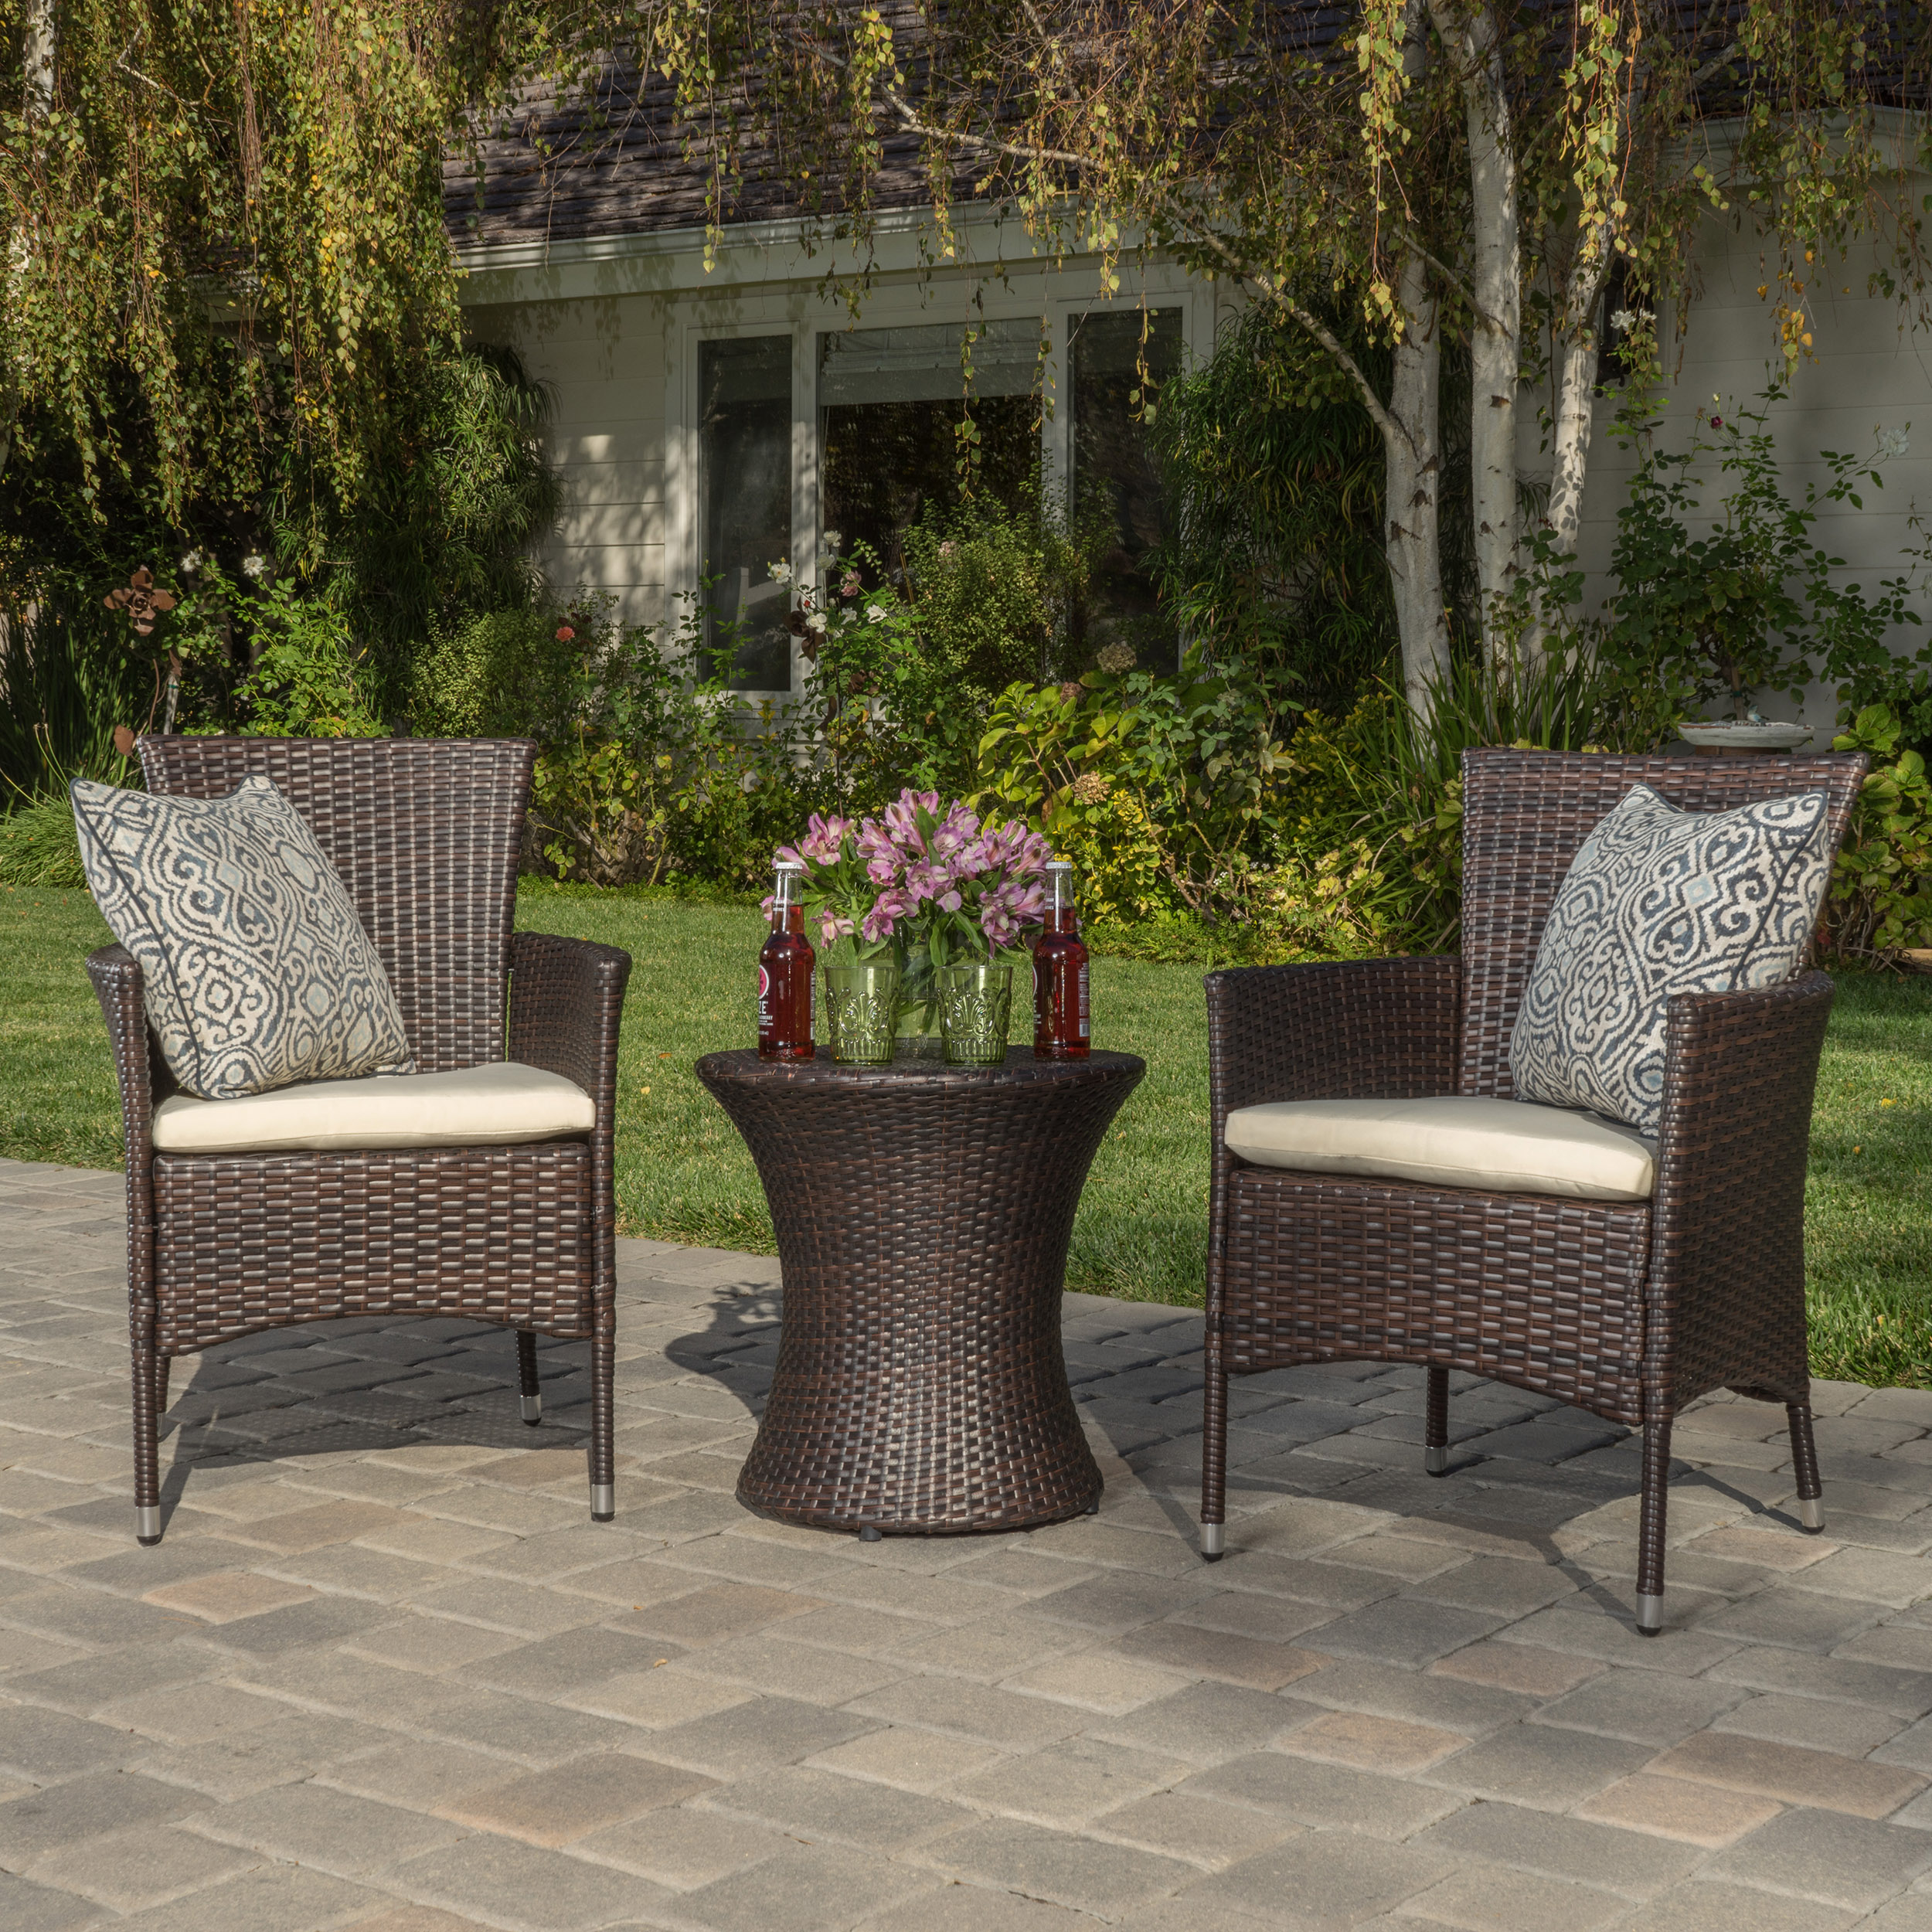 Palermo Outdoor Brown Wicker 3 Piece Chat Set With Cushions